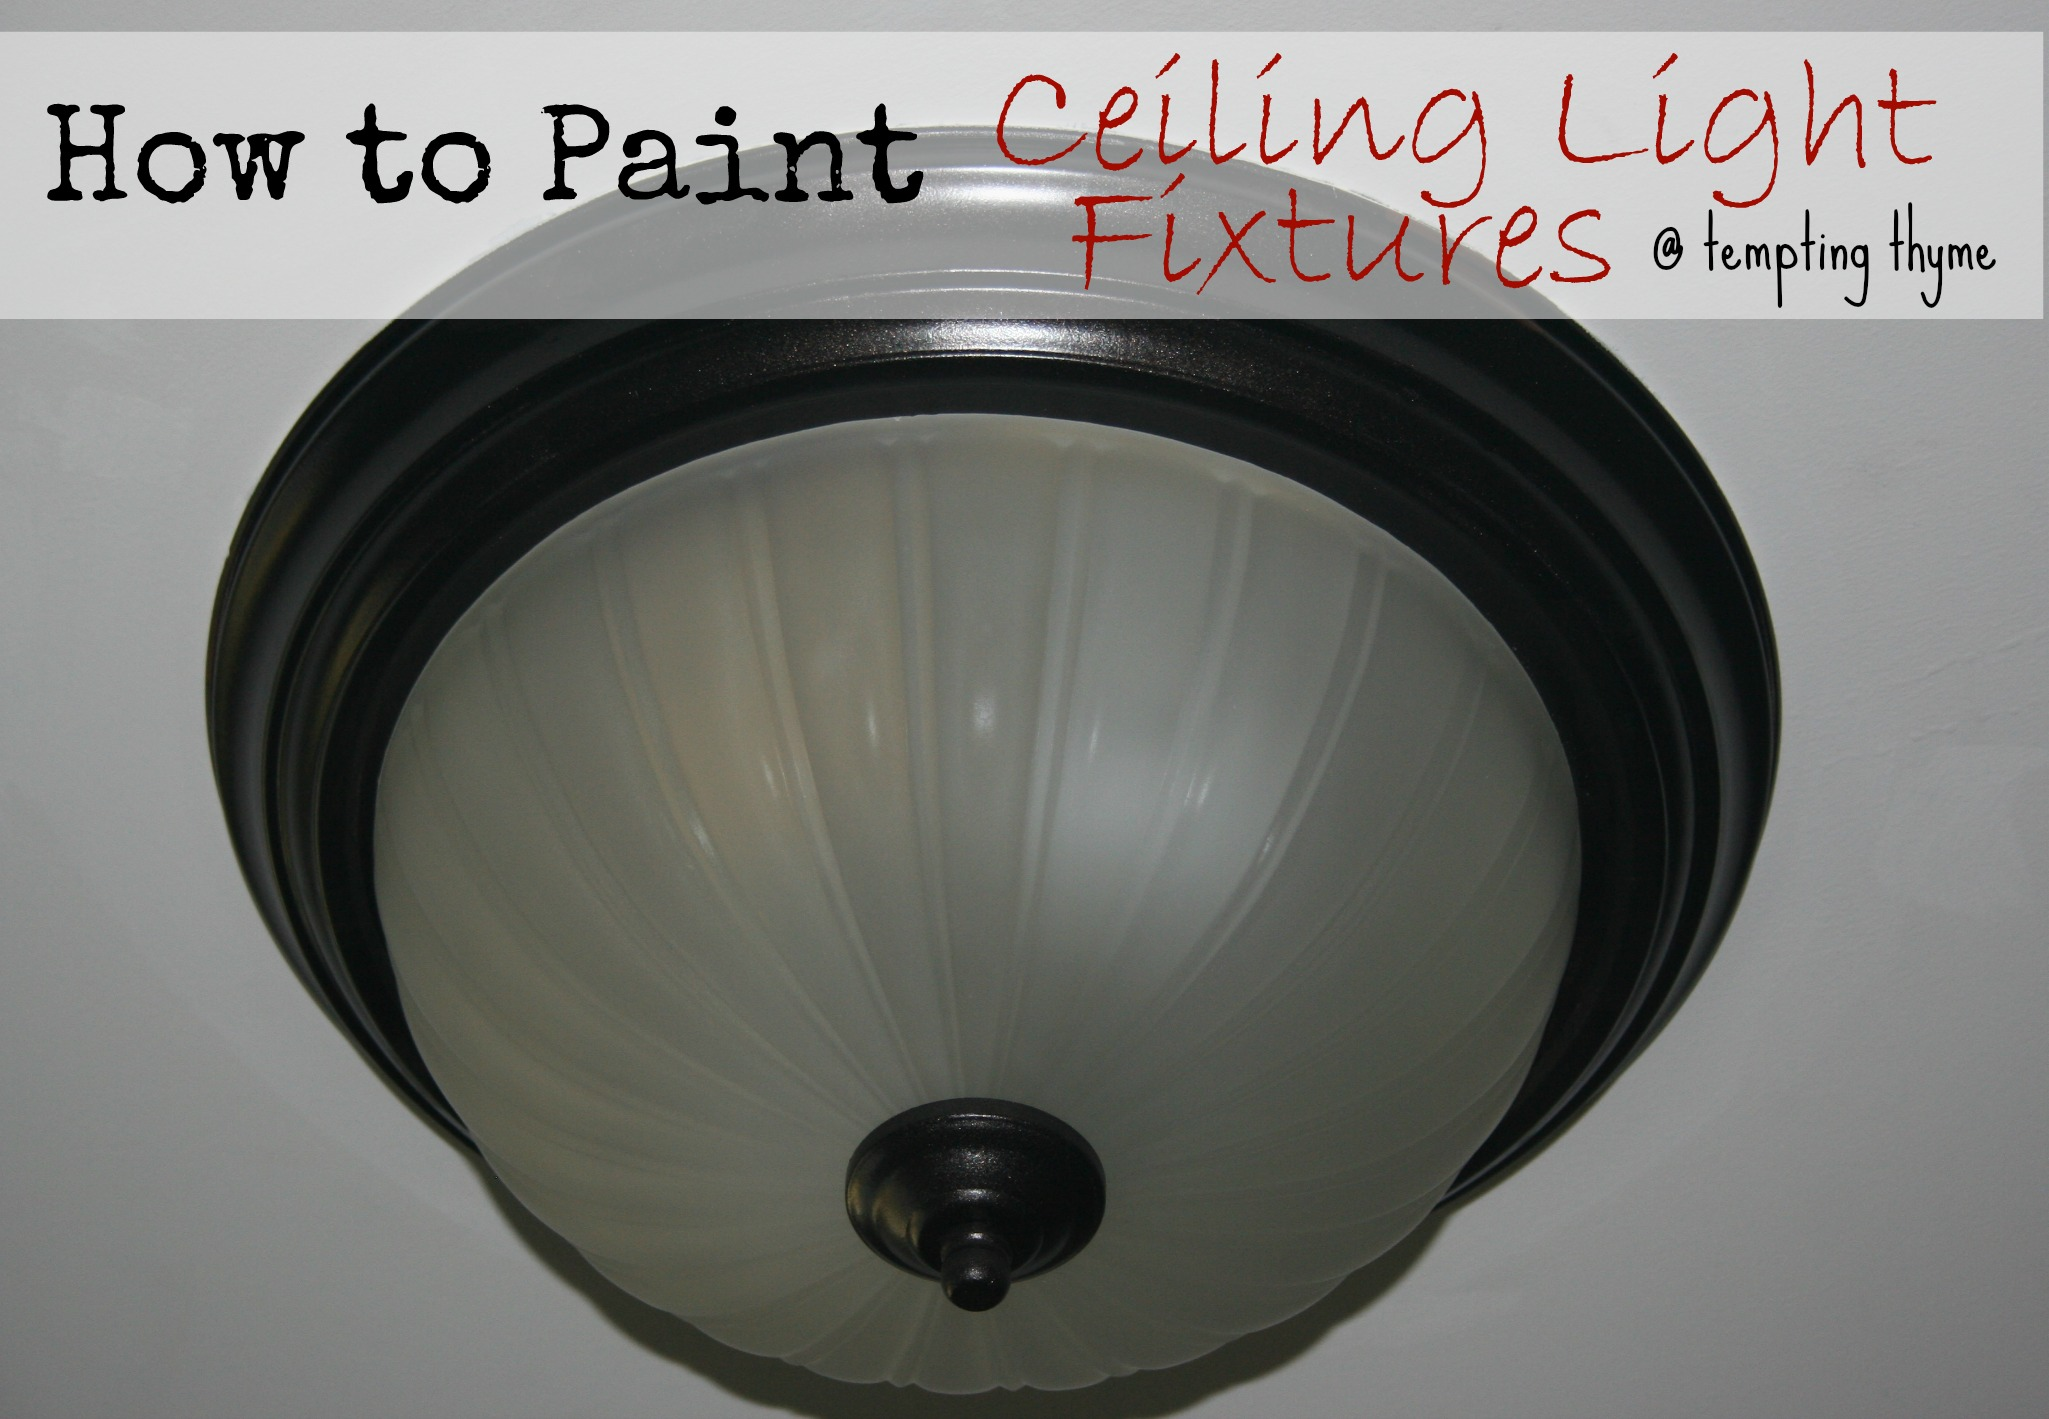 How To Paint An Old Ugly Light Fixture Tempting Thyme